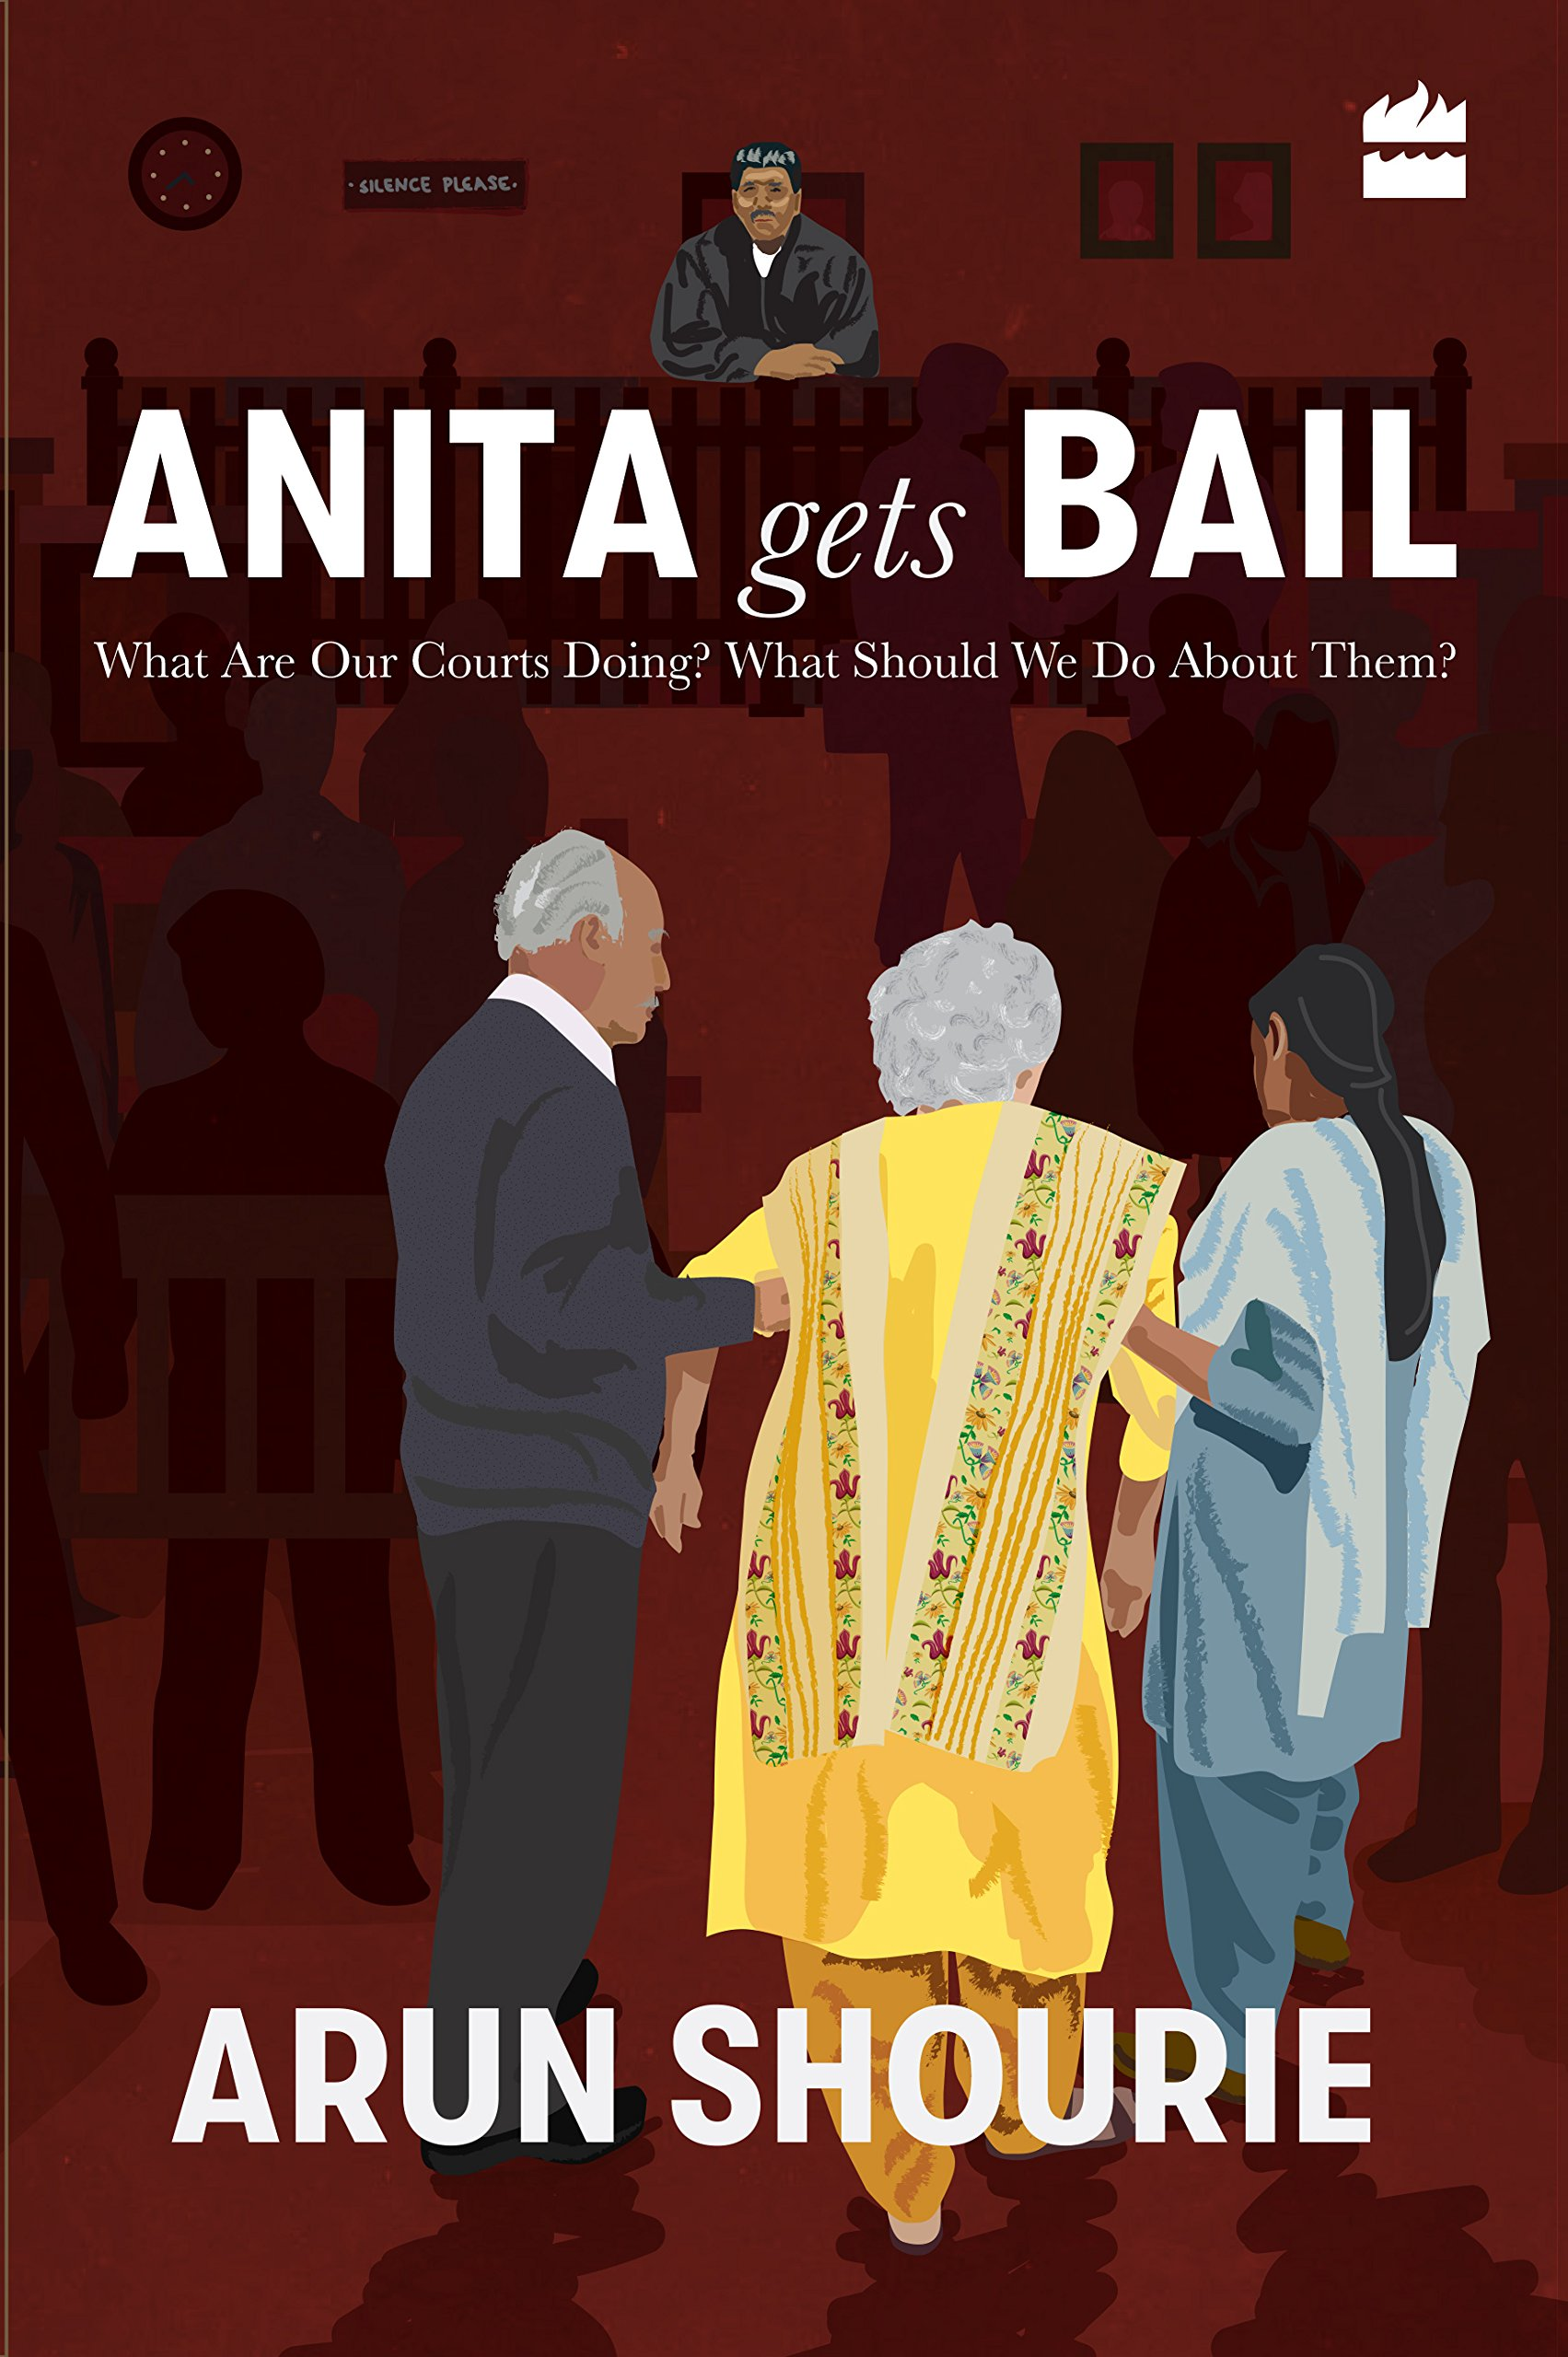 Anita gets bail: more on courts and their judgements